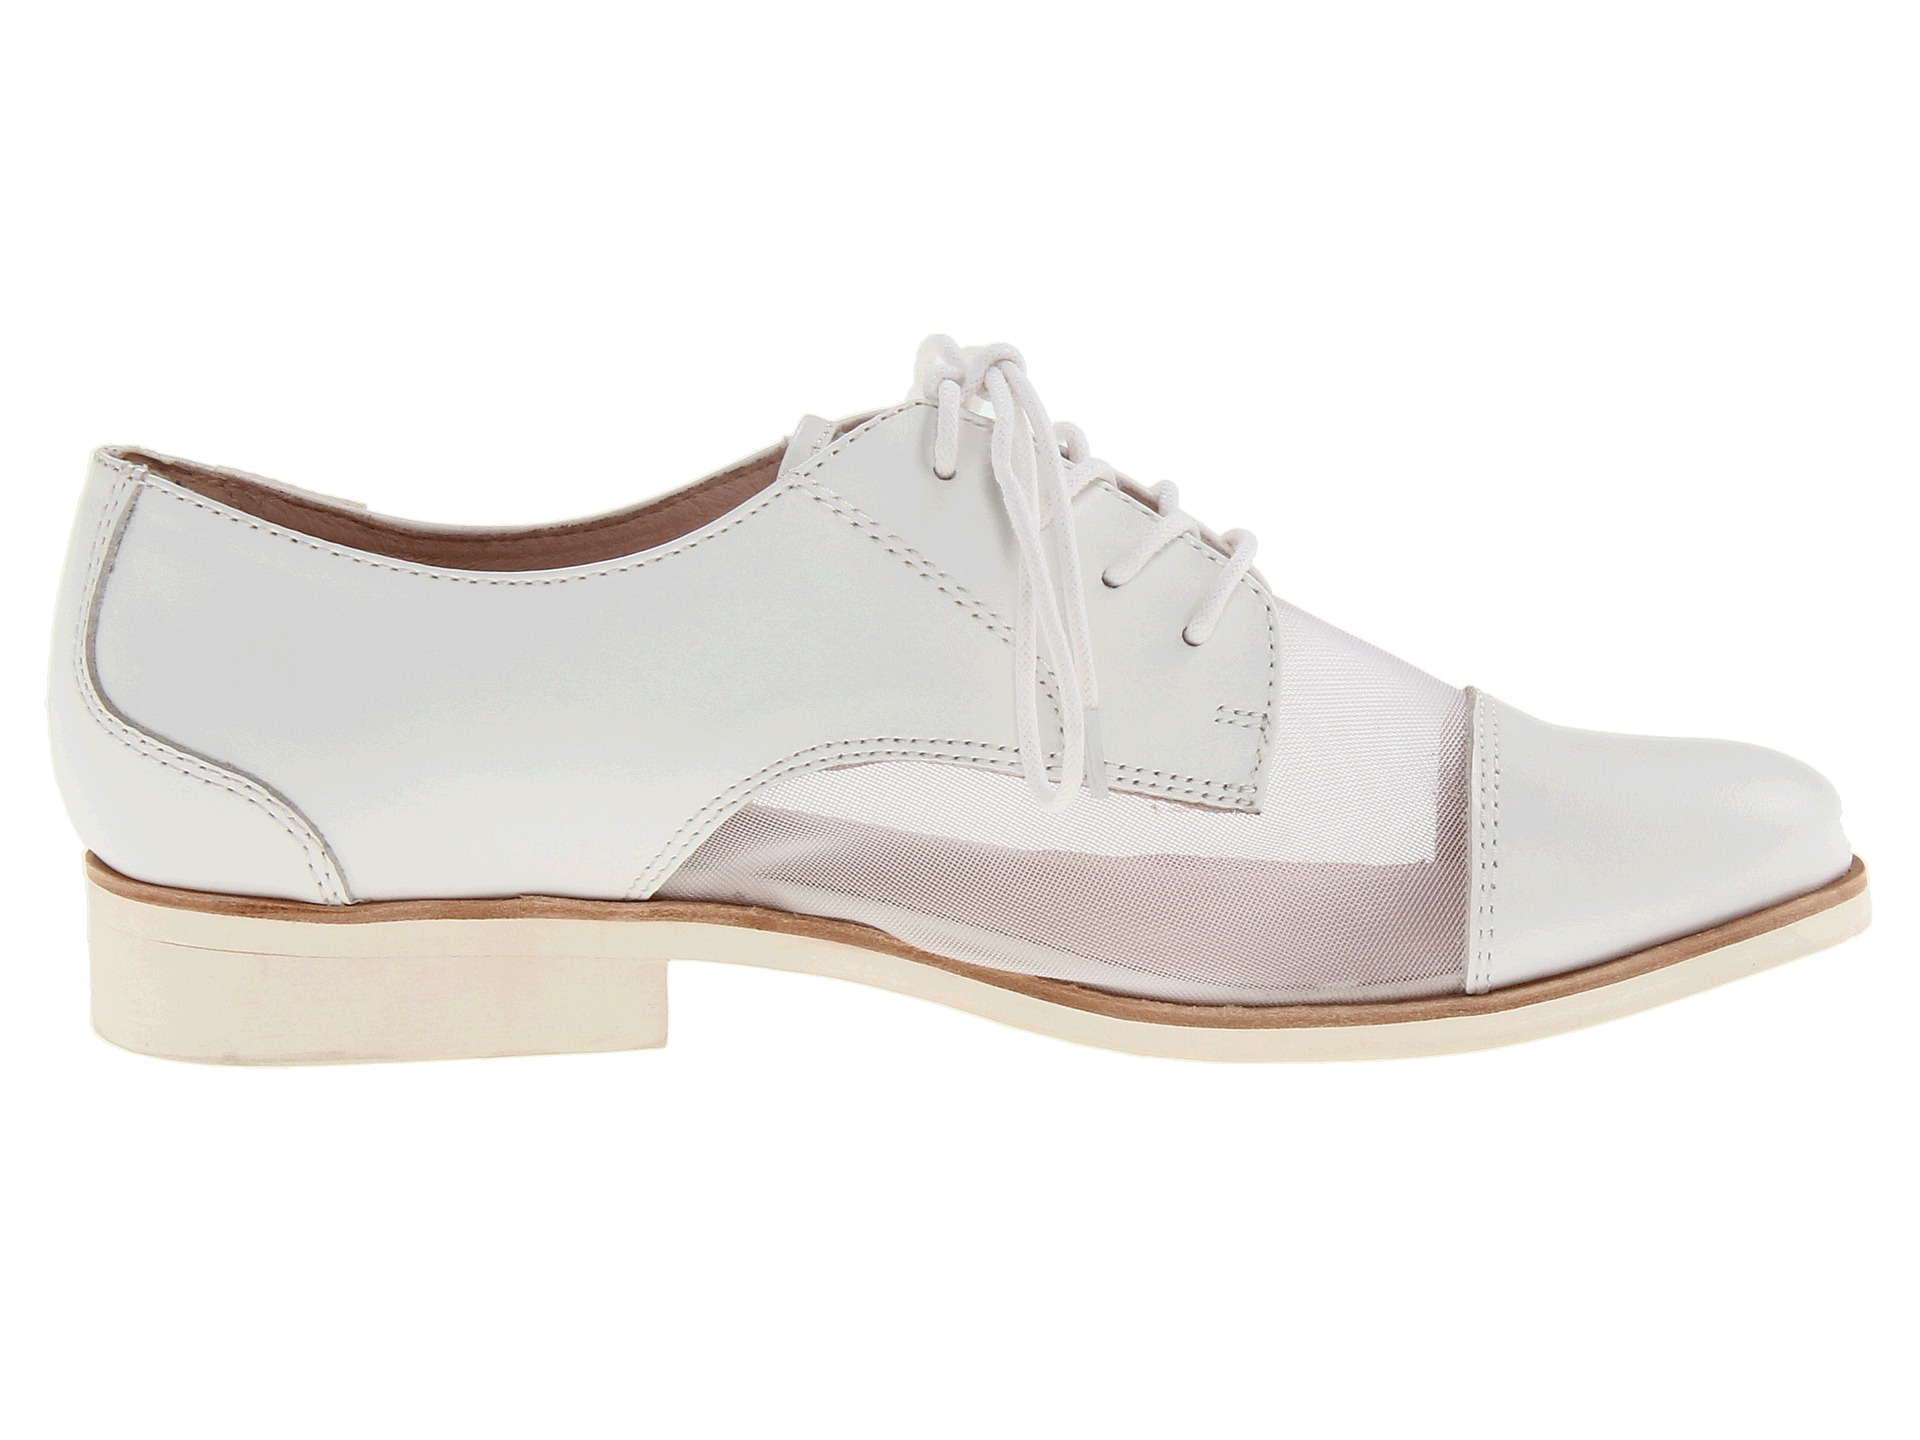 Bass White Sheer Tavi Lace-Up Oxfords ($67)